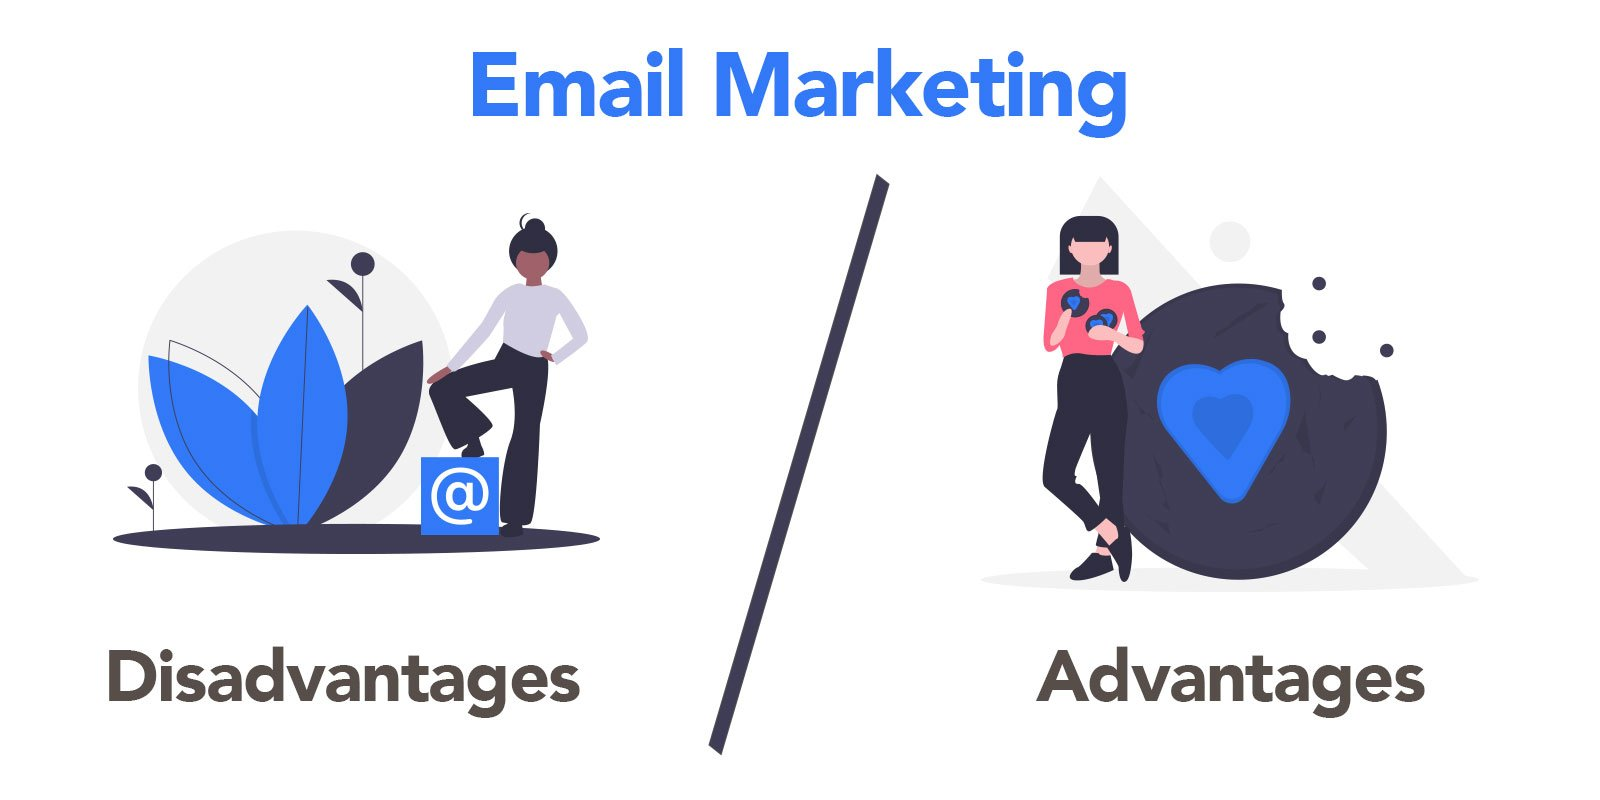 Some Advantages and Disadvantages of Email Marketing